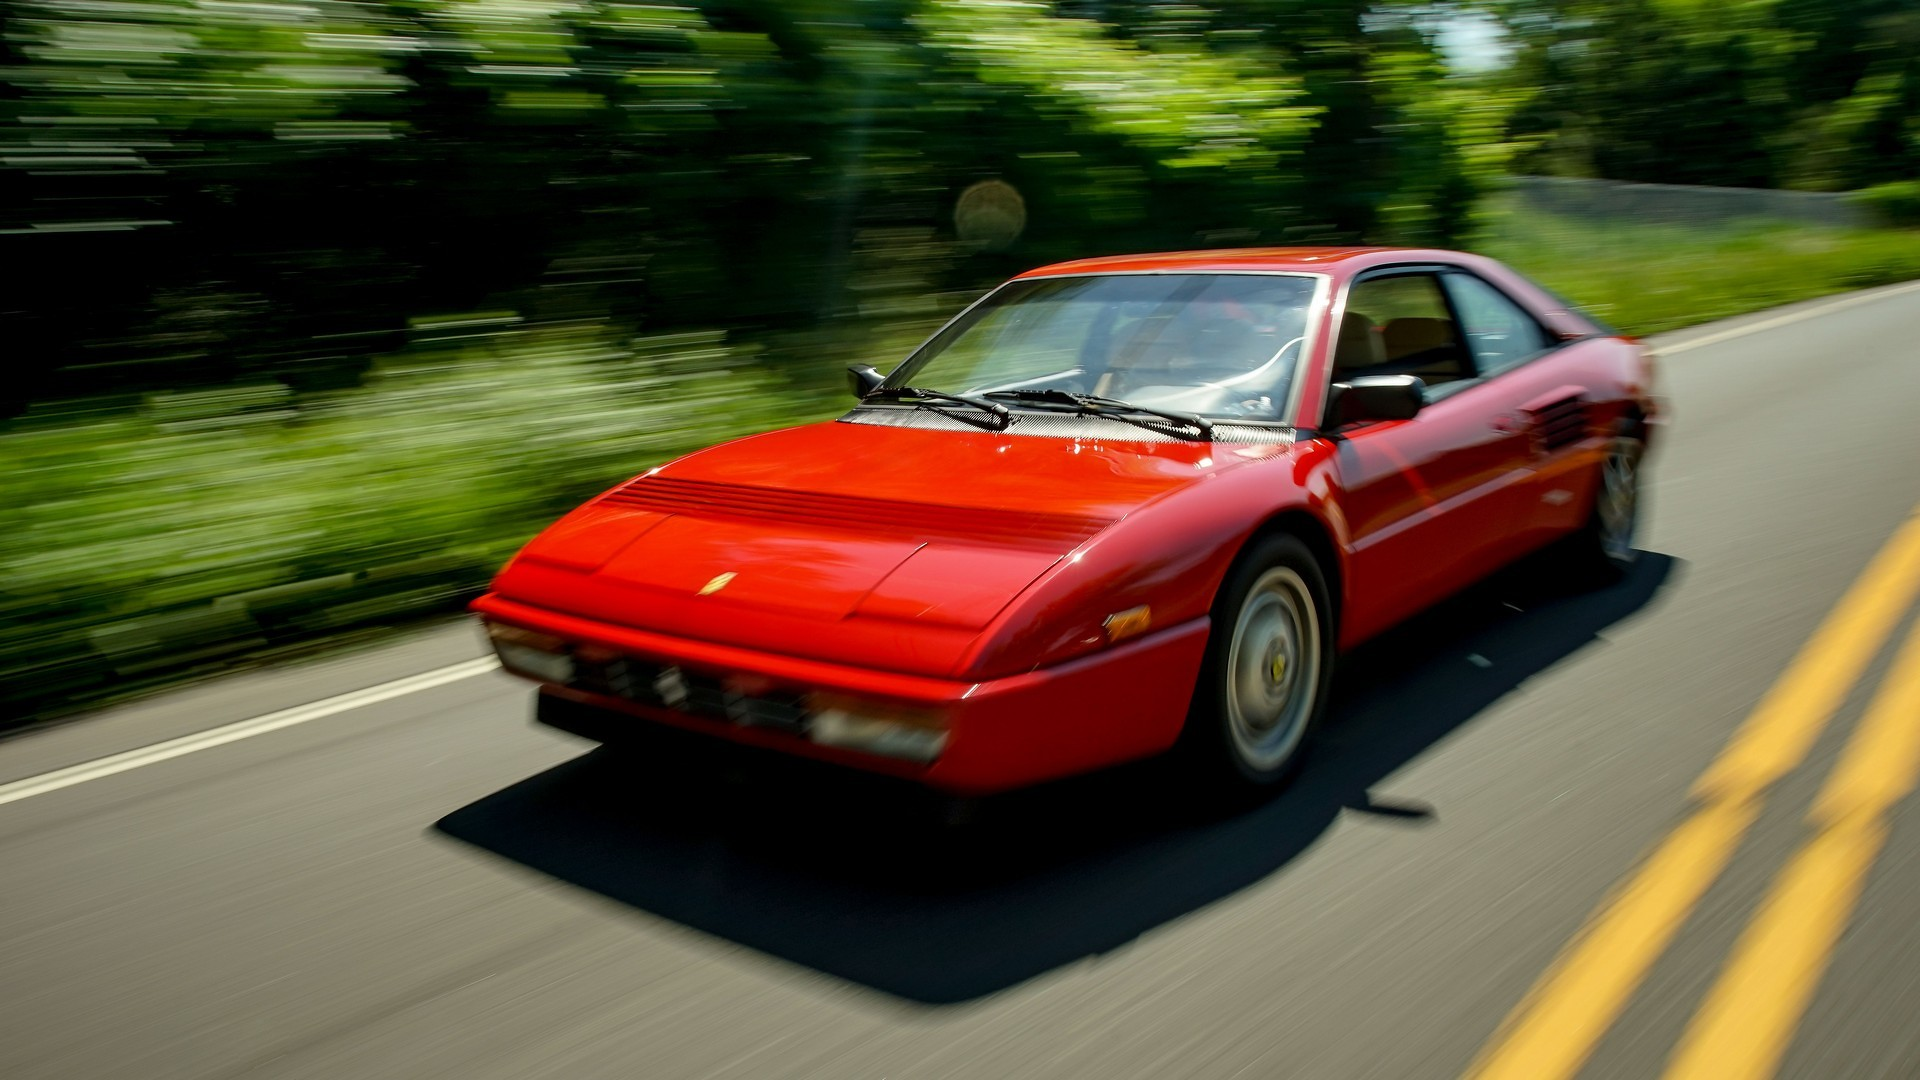 1989 ferrari mondial t price 1989 ferrari mondial t red 1989 ferrari mondial t cabriolet. Black Bedroom Furniture Sets. Home Design Ideas